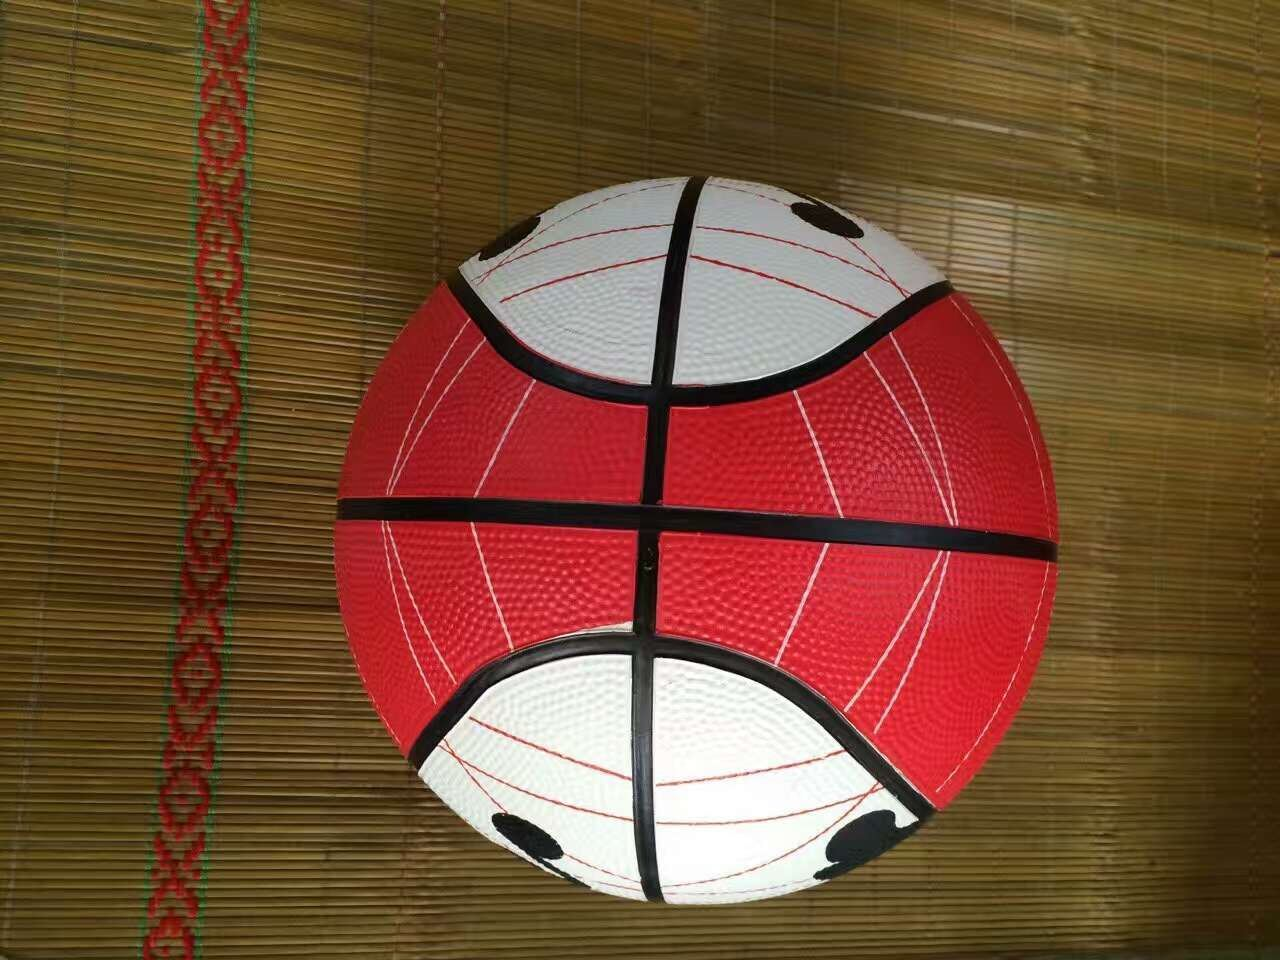 7# Rubber Outdoors Sports Basketball